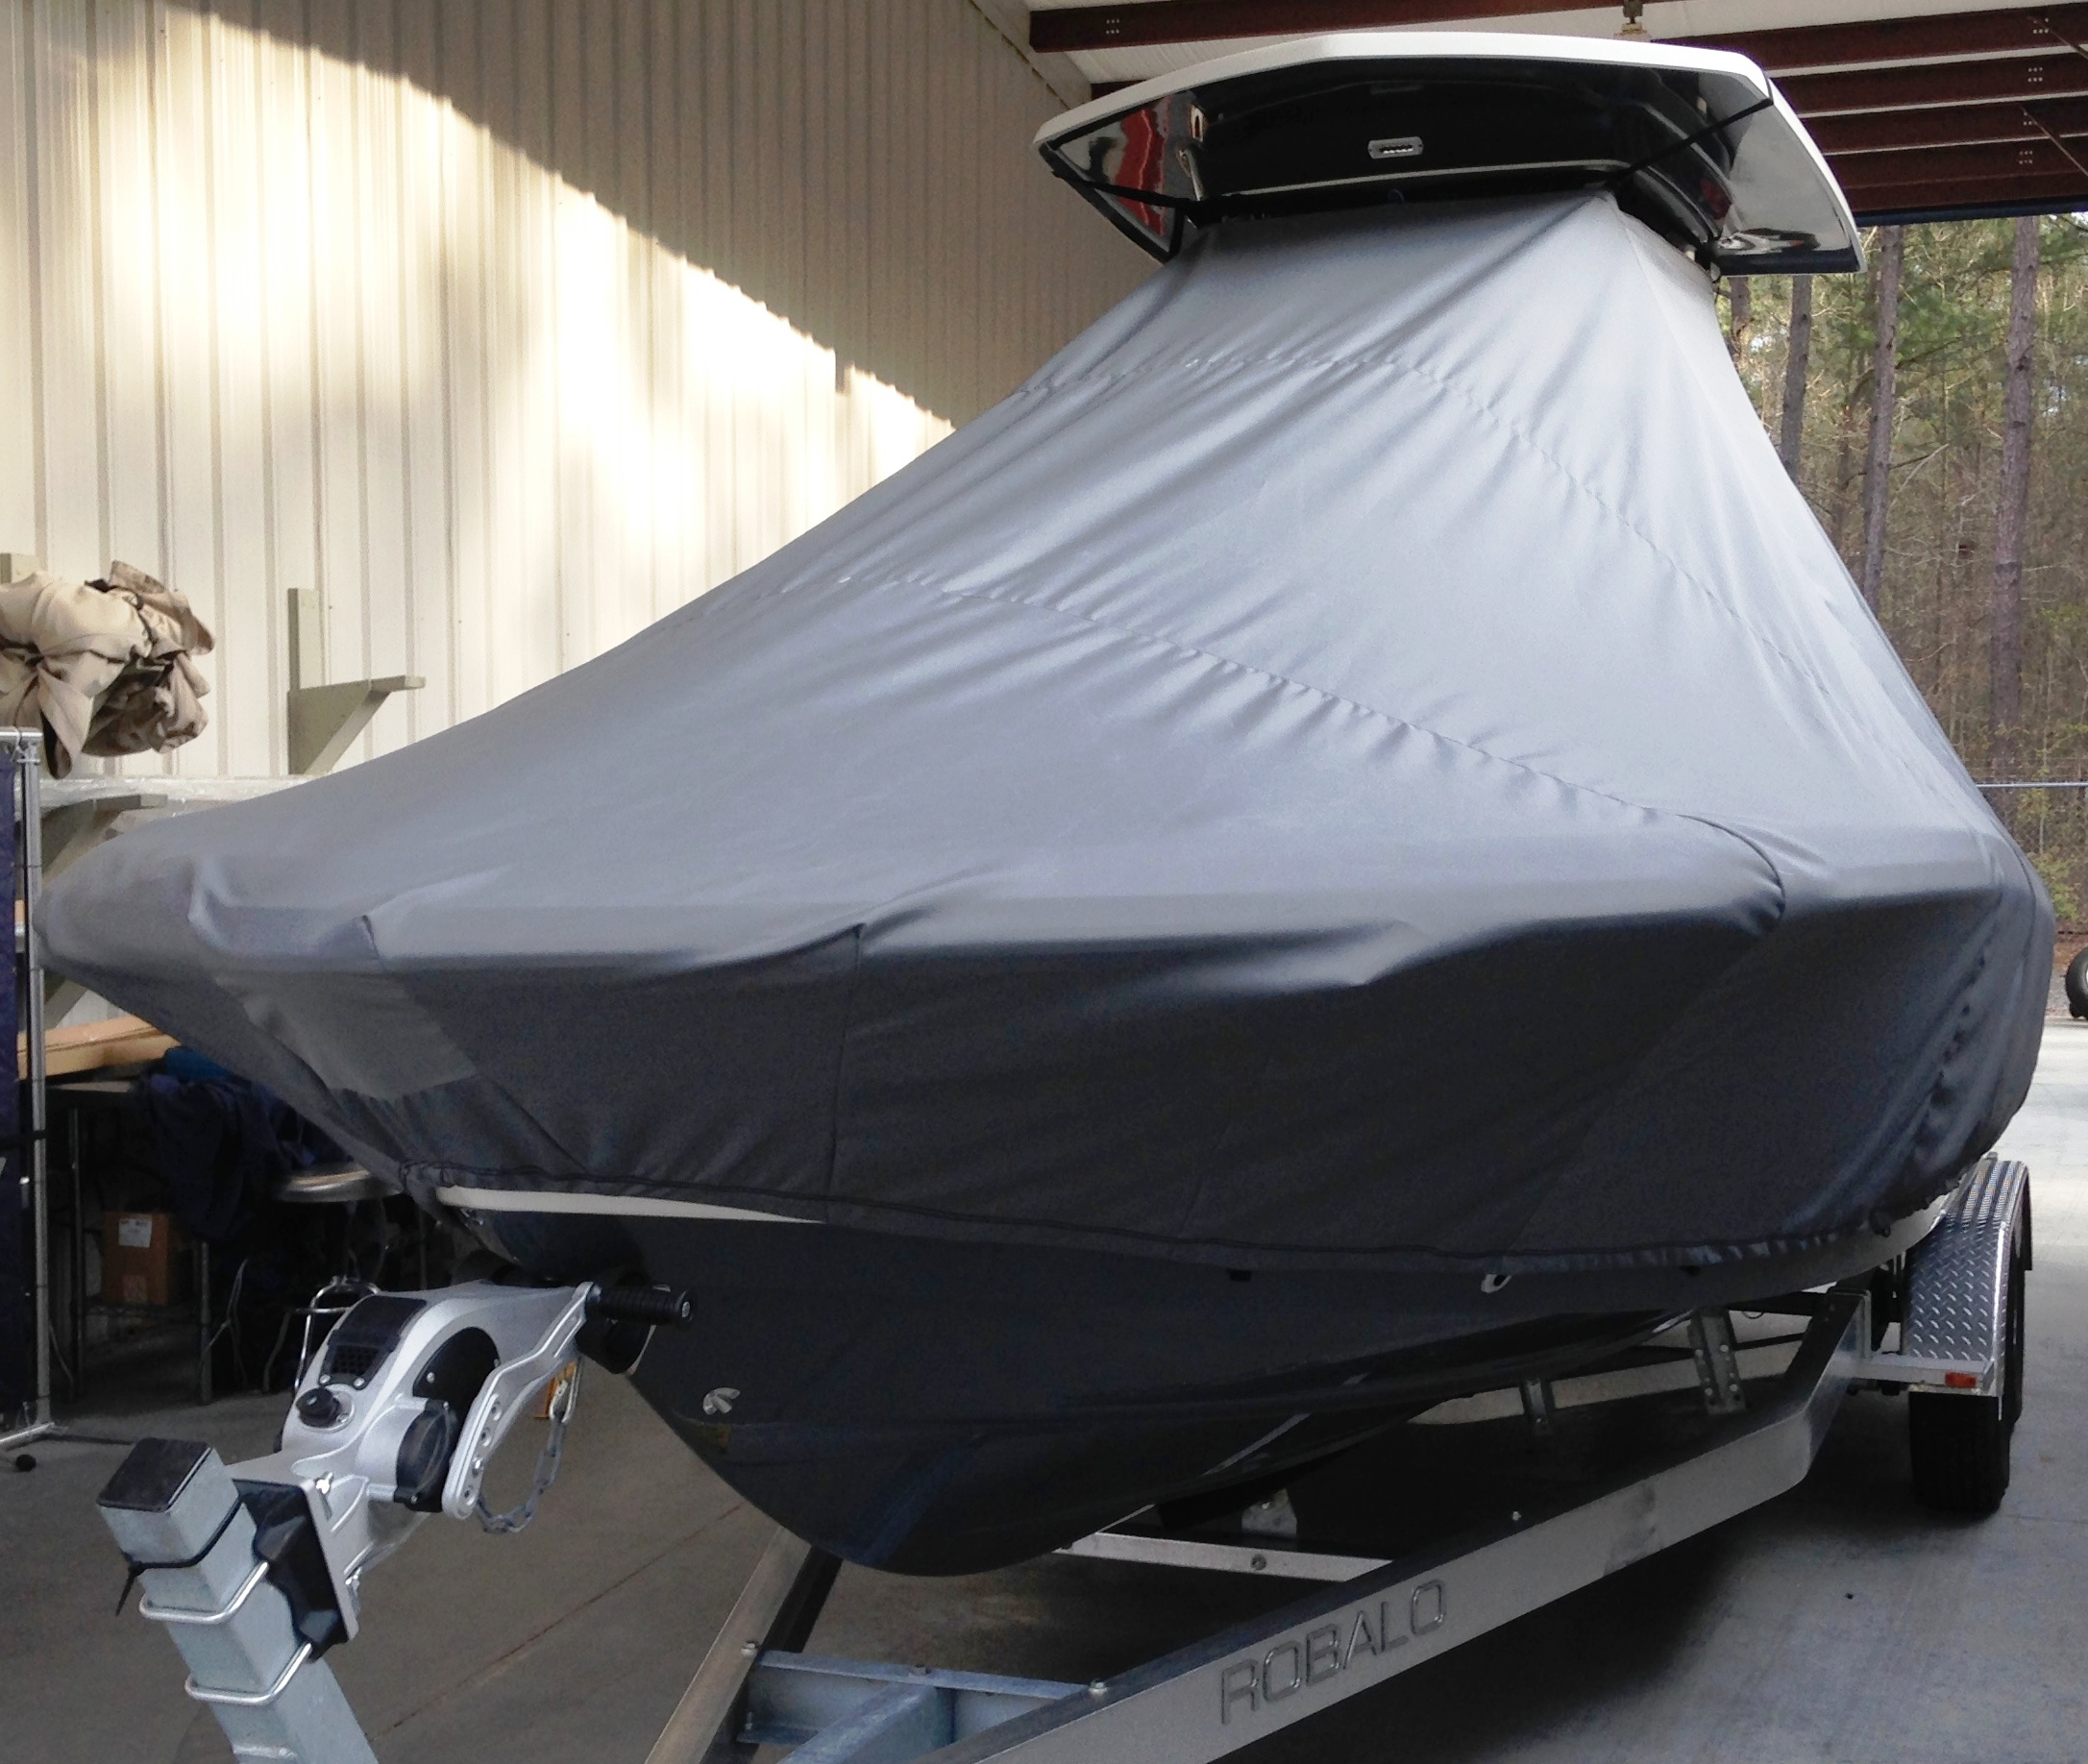 Robalo 246 Cayman, 20xx, TTopCovers™ T-Top boat cover, port front